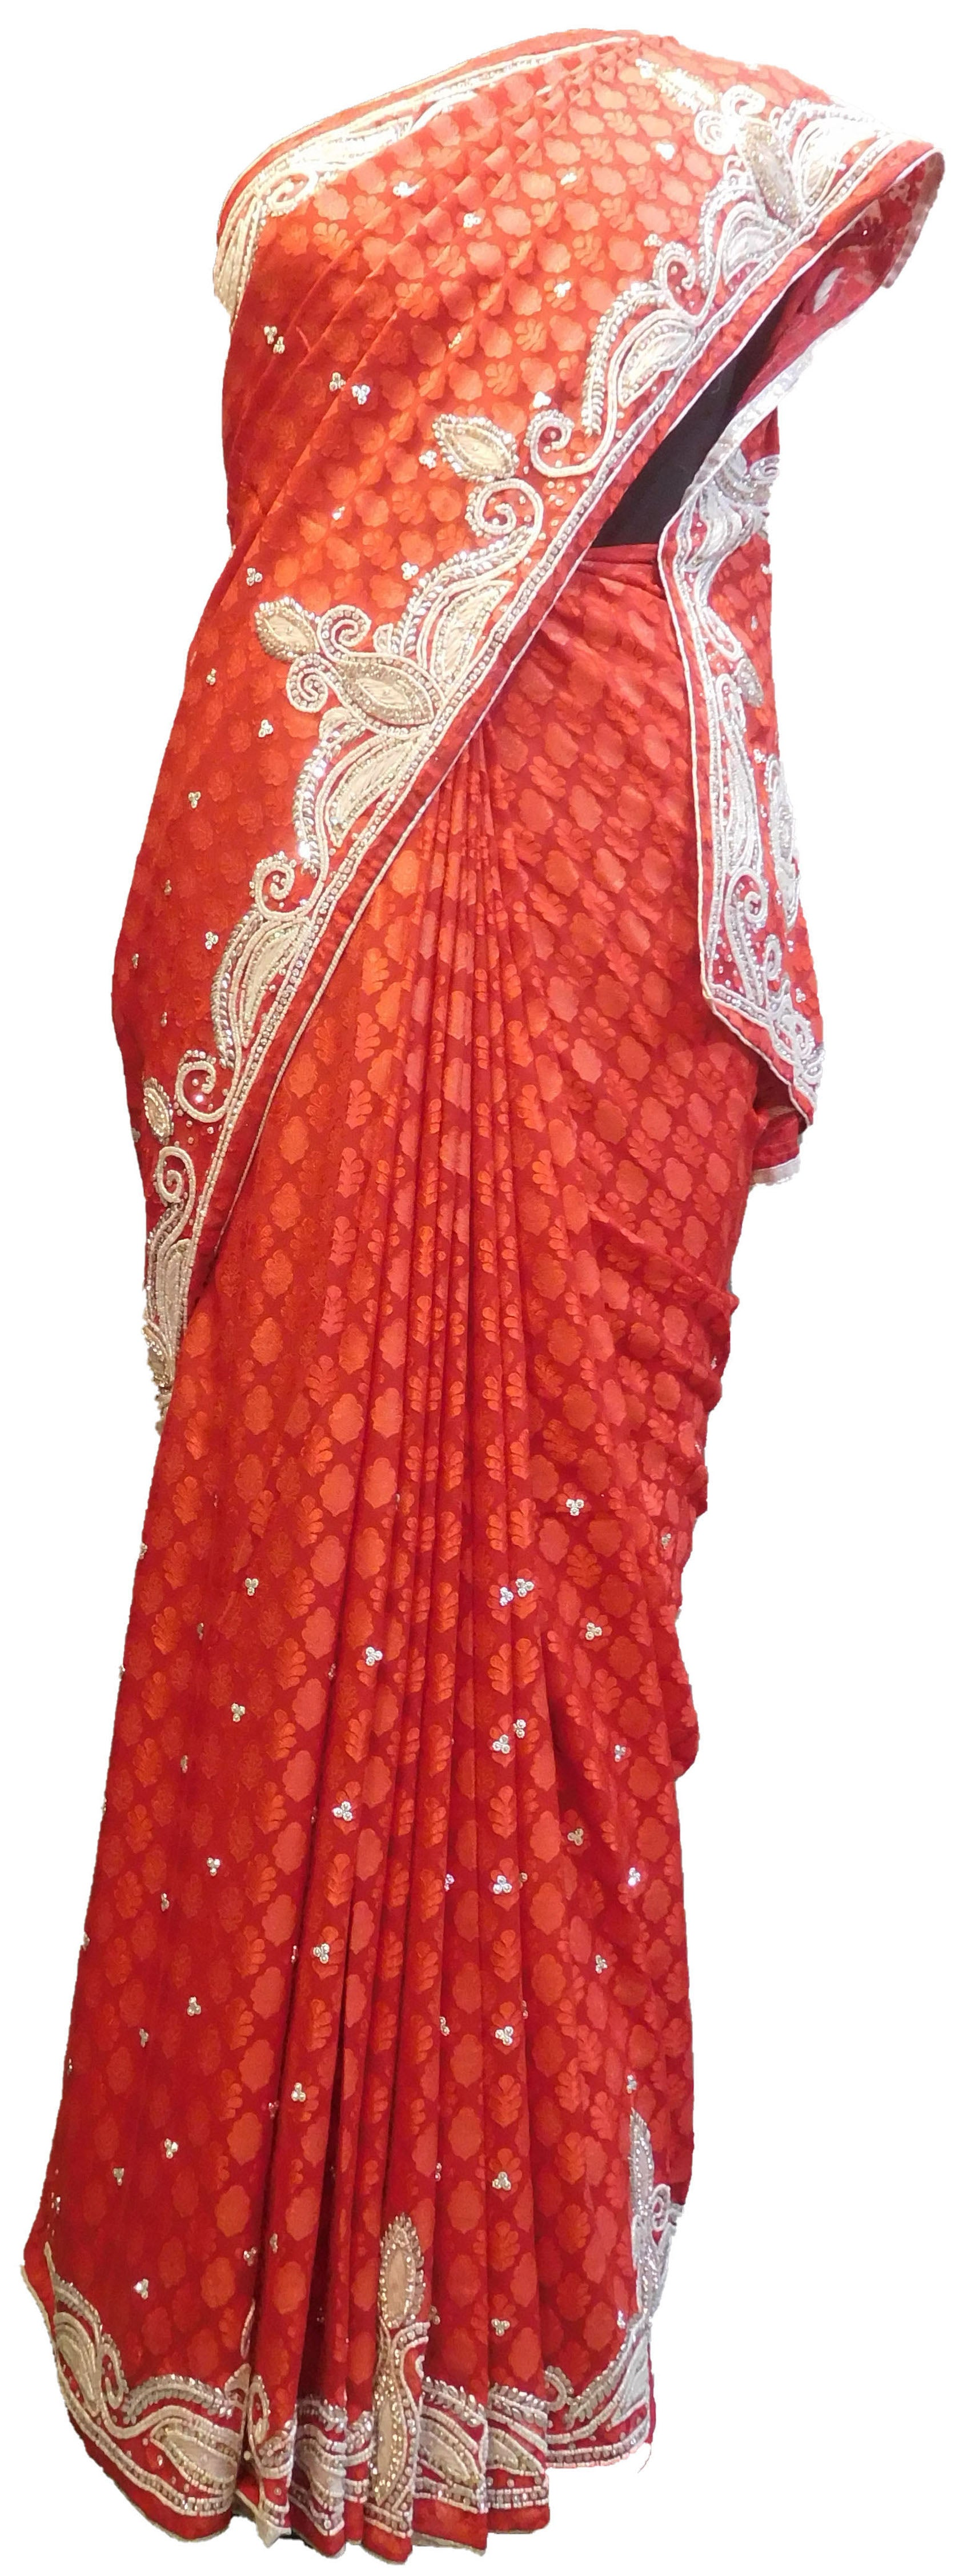 SMSAREE Red Designer Wedding Partywear Brasso Thread Beads & Stone Hand Embroidery Work Bridal Saree Sari With Blouse Piece E635